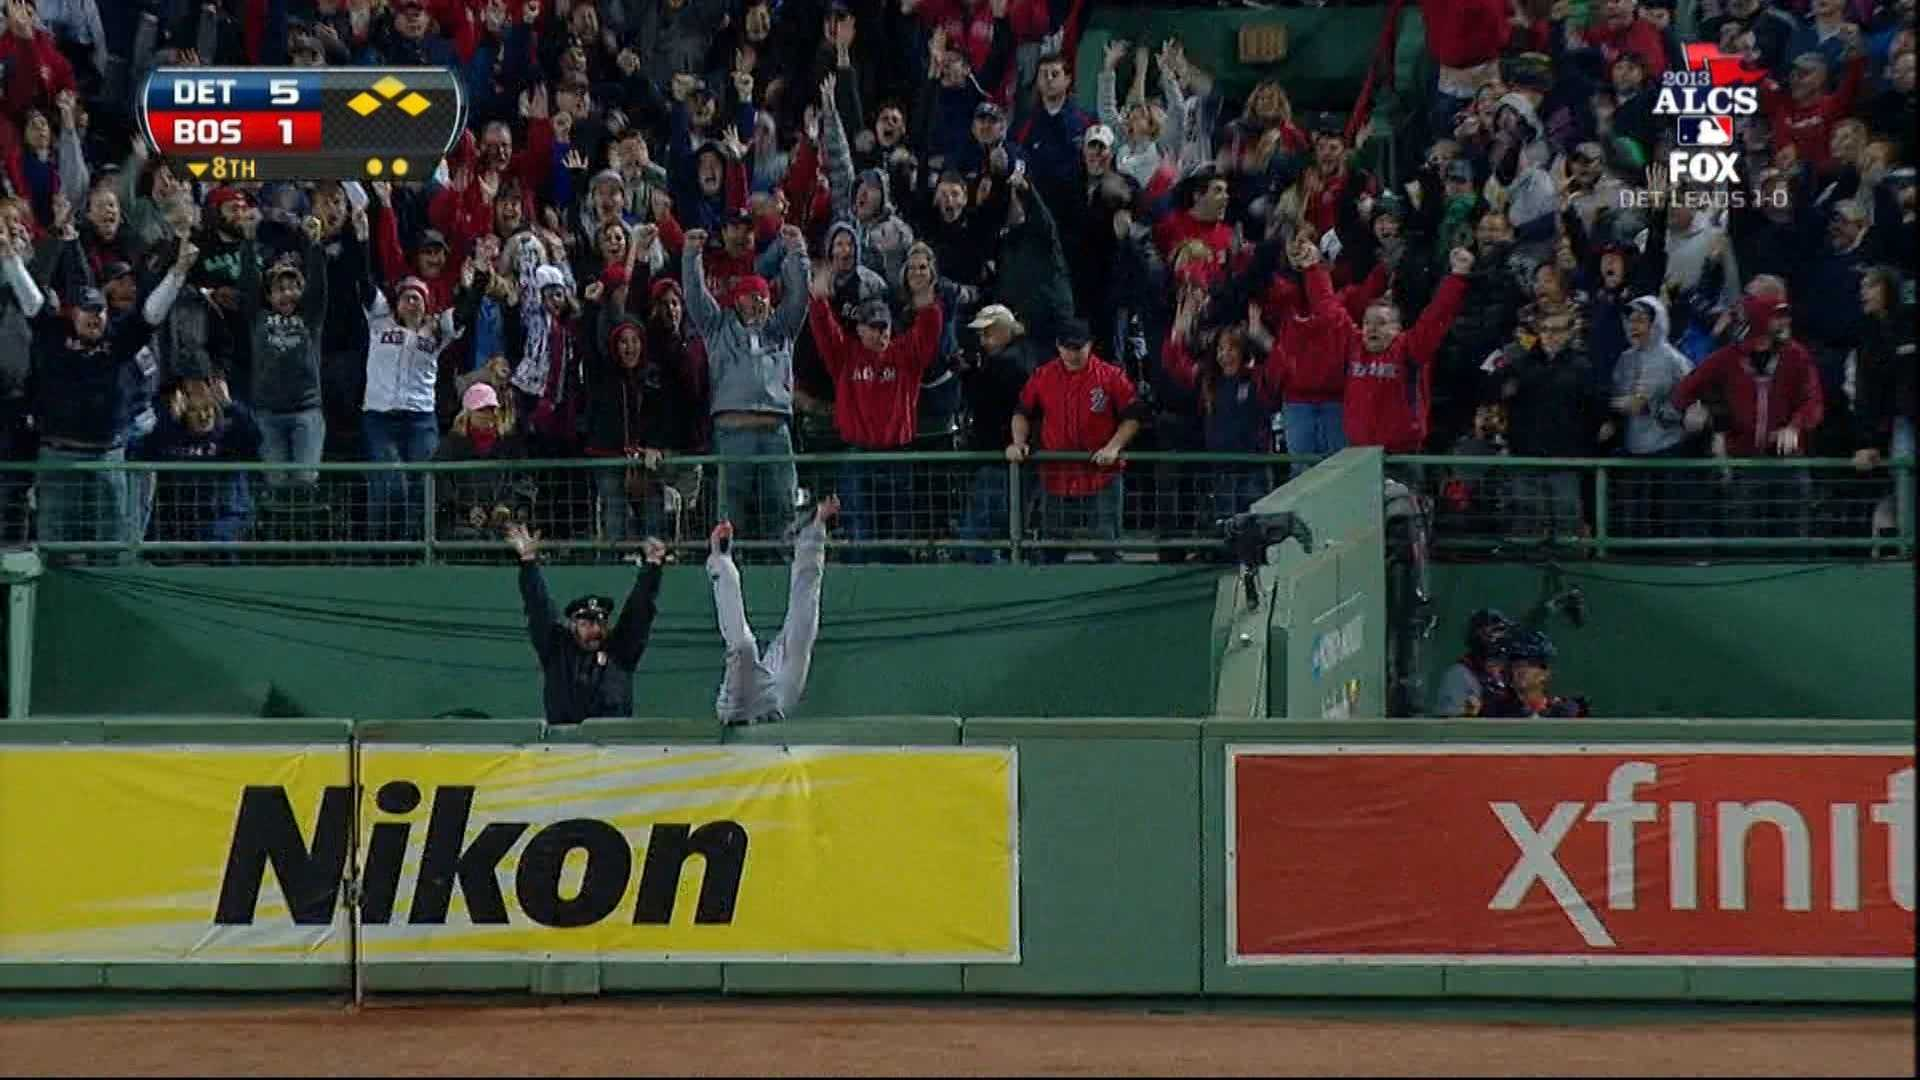 "This image of Steve Horgan, a 50-year-old native of South Walpole, Mass., and a 27-year veteran of the Boston Police force, has already become an iconic symbol of the 2013 Boston Red Sox.""I couldn't even hear myself it was so loud,"" Horgan told ESPN. ""I can't believe it. I don't know what to think. I can't believe it. It was an awesome feeling."""